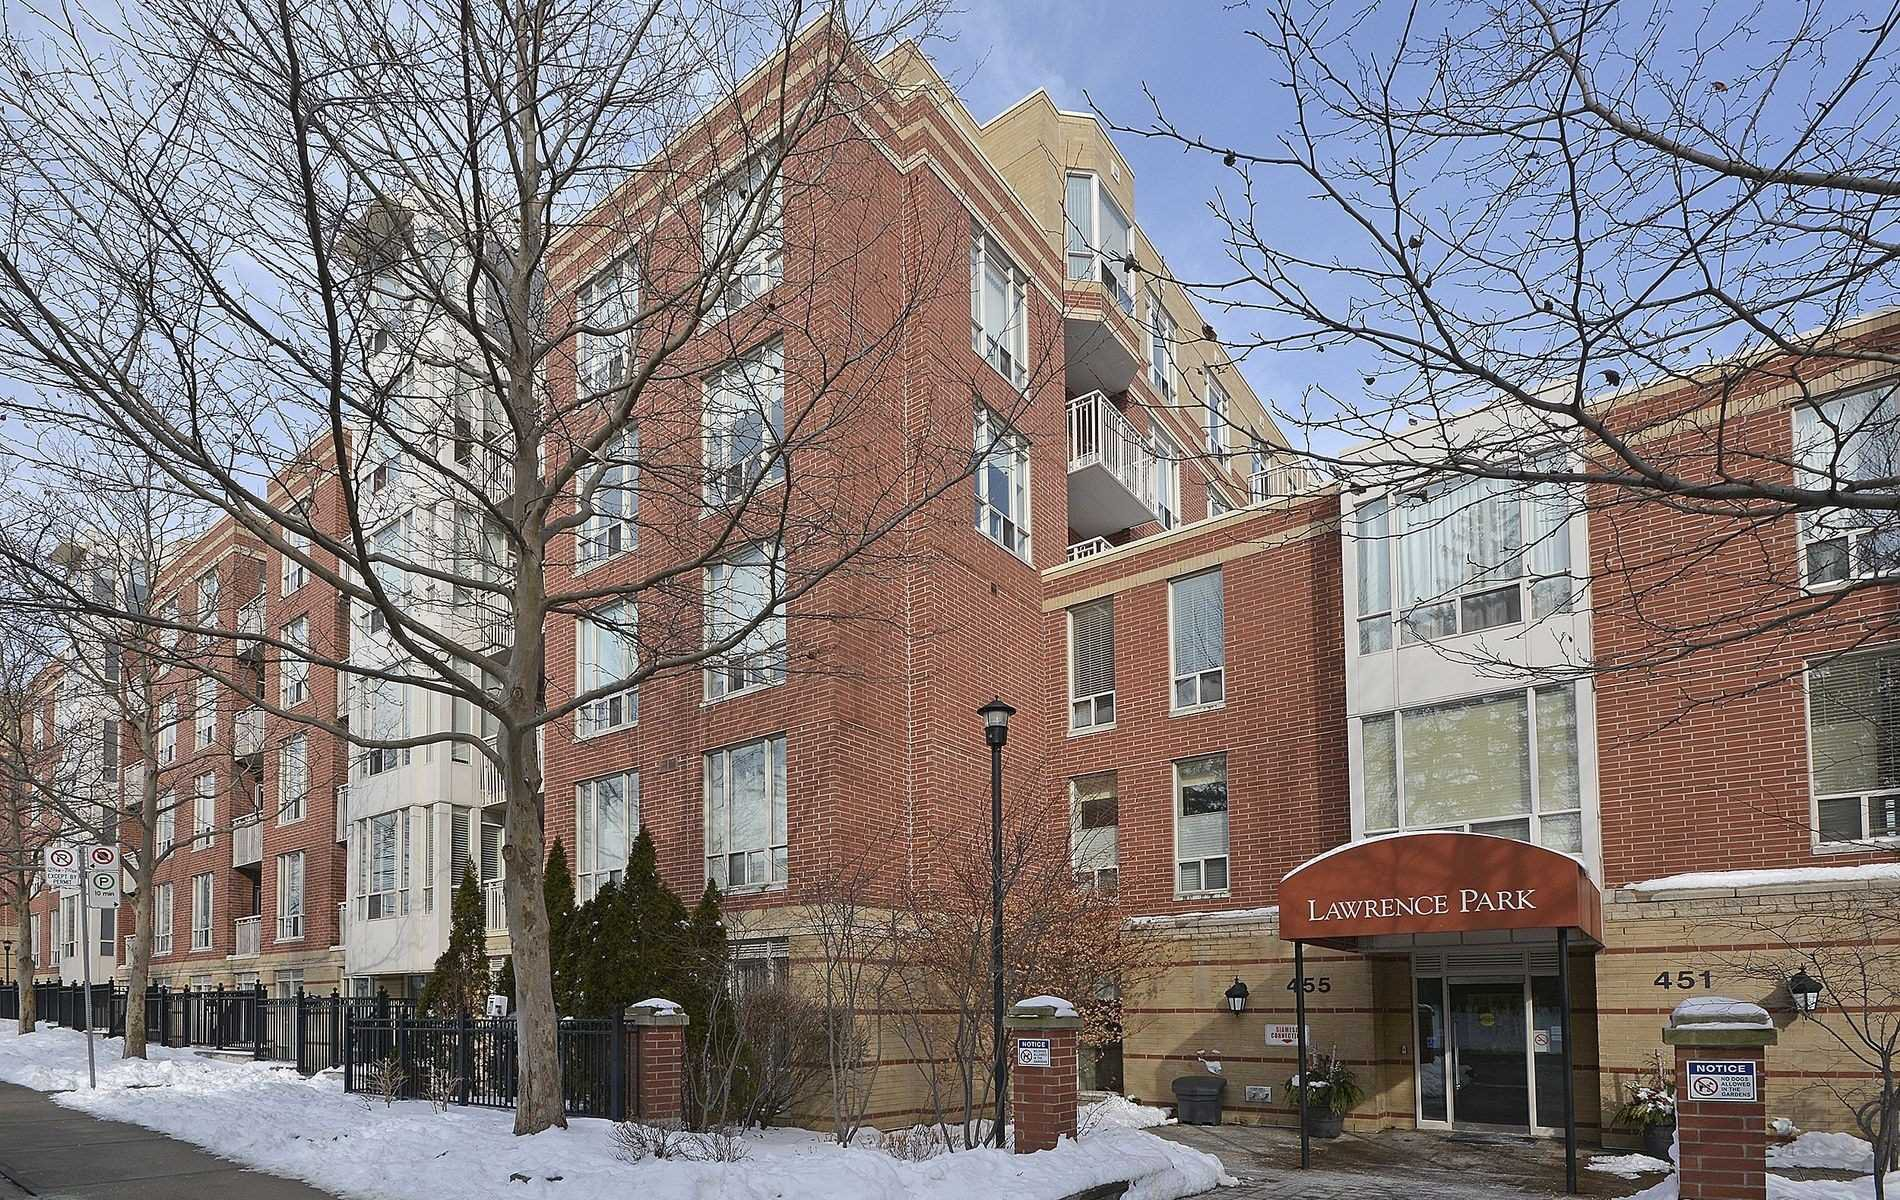 Main Photo: 610 455 Rosewell Avenue in Toronto: Lawrence Park South Condo for sale (Toronto C04)  : MLS®# C4678281